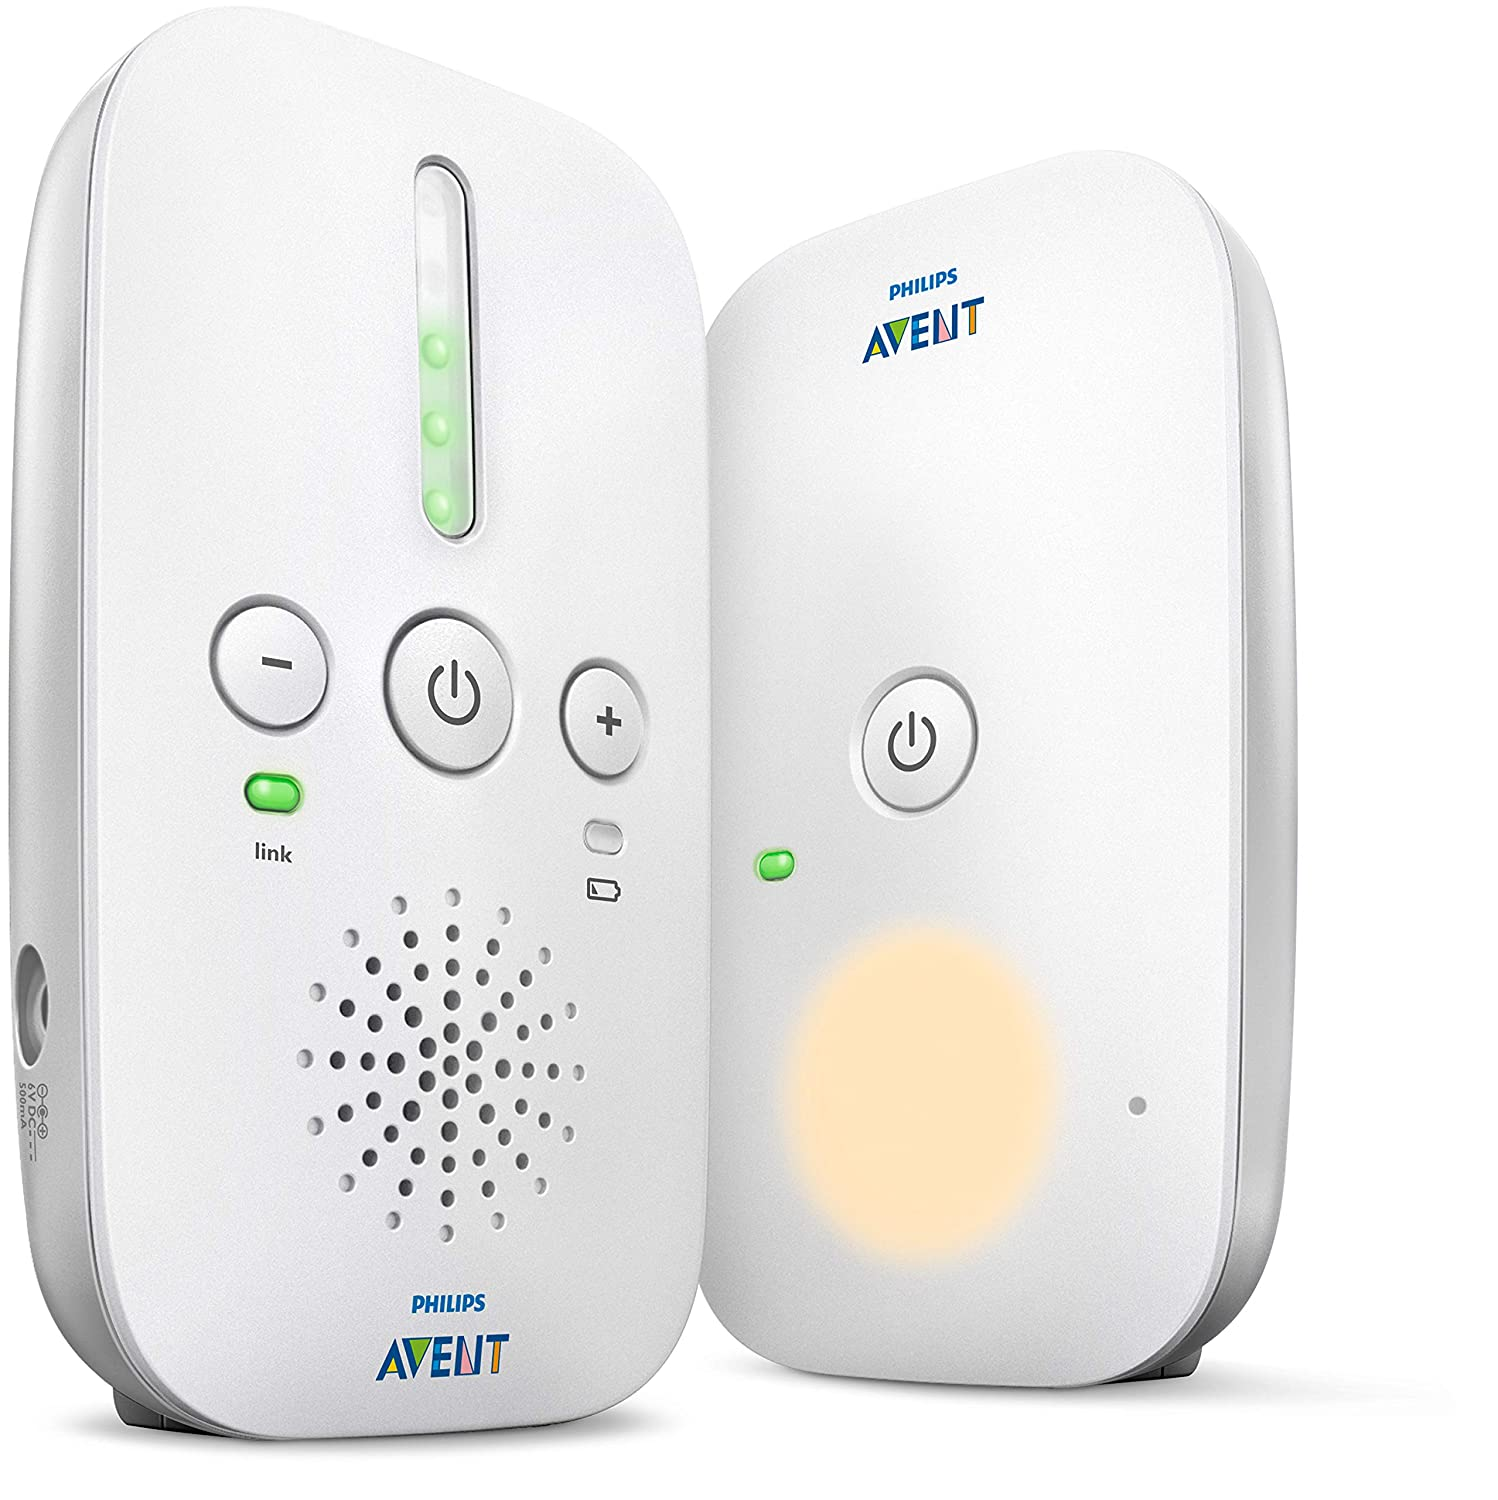 Philips AVENT Audio Baby Monitor Dect SCD502/10, White